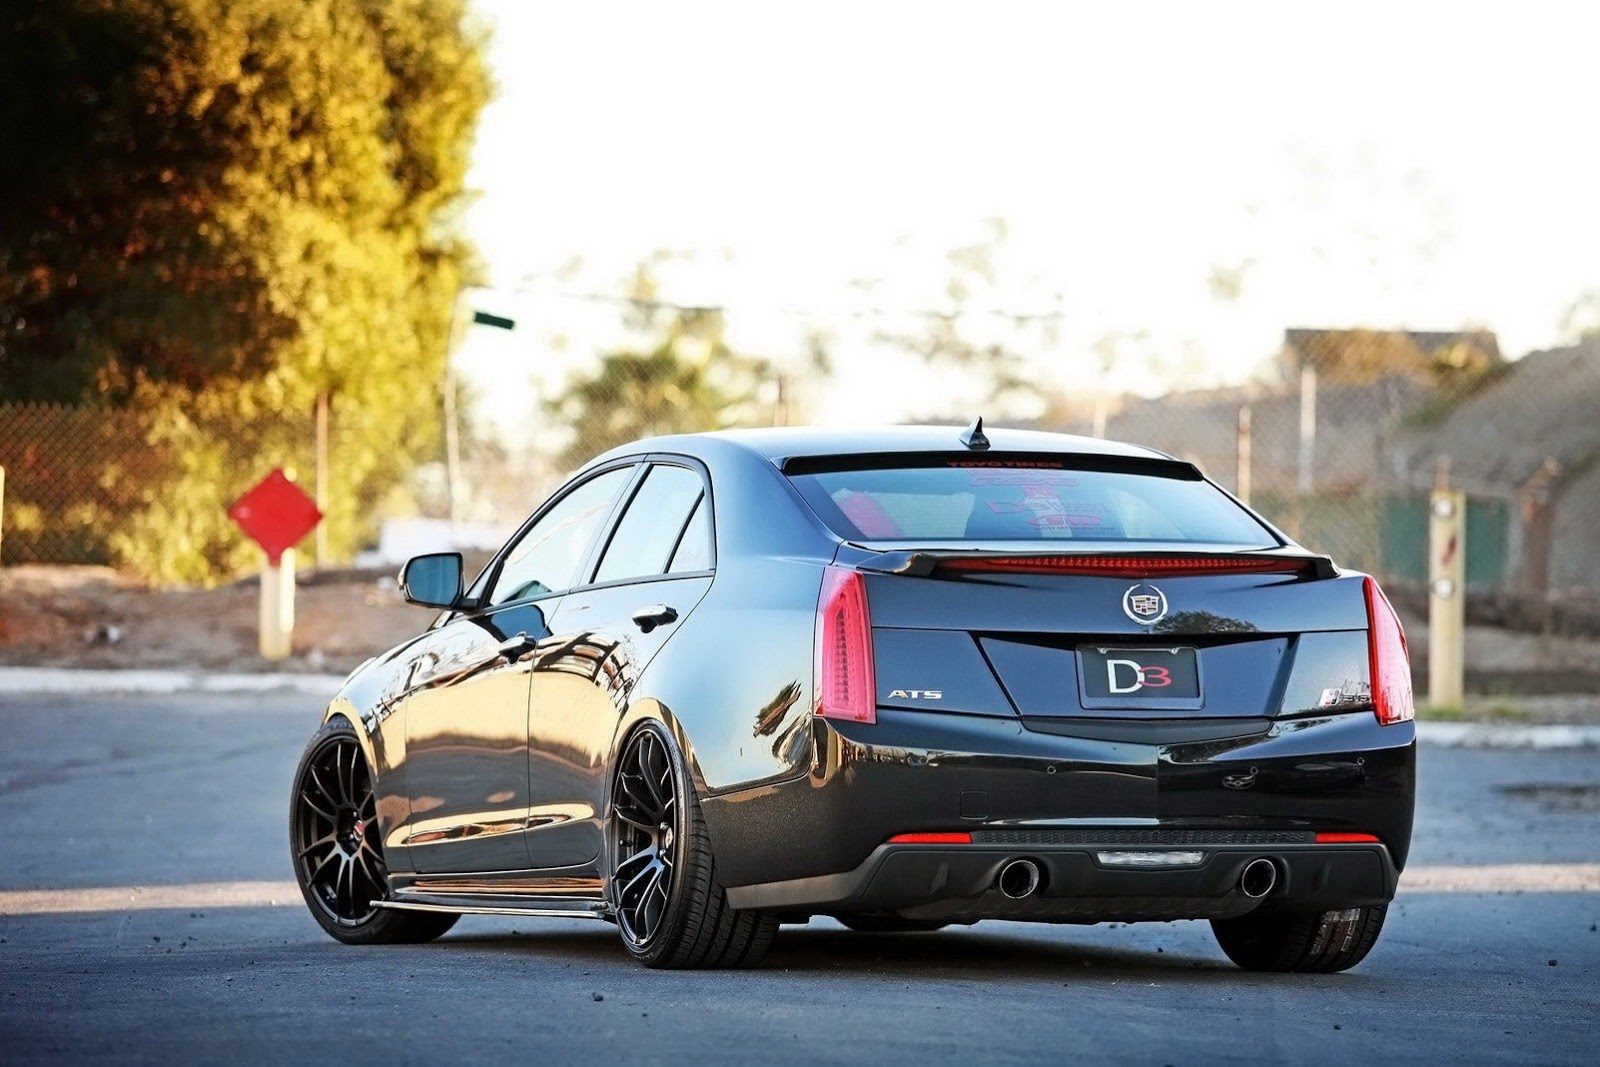 2013 Cadillac Ats Tuned By D3 Autoevolution